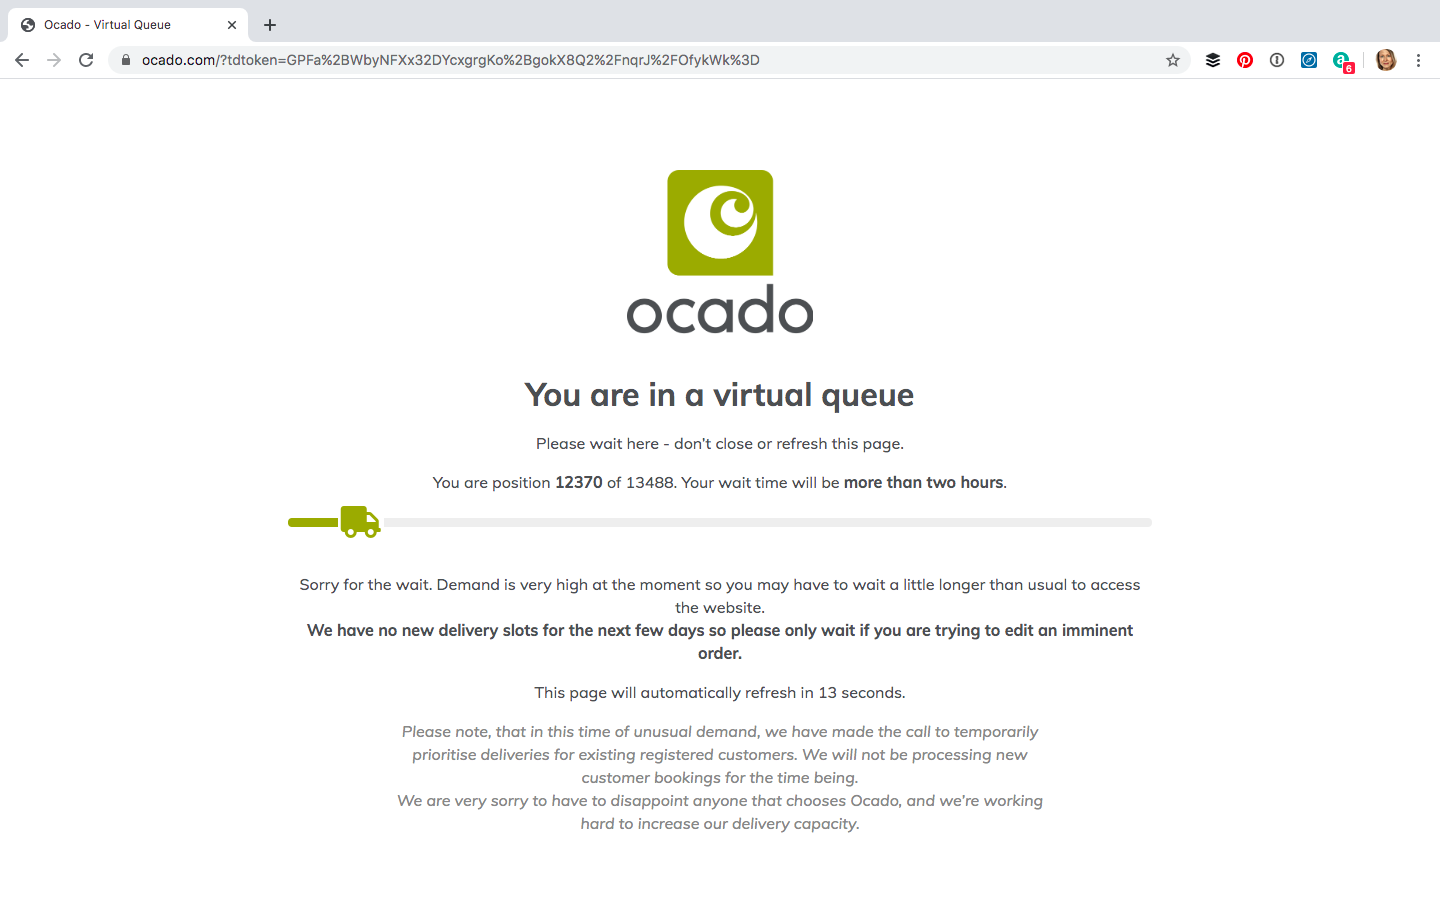 2 Ocado website - you are no 12370 in the queue